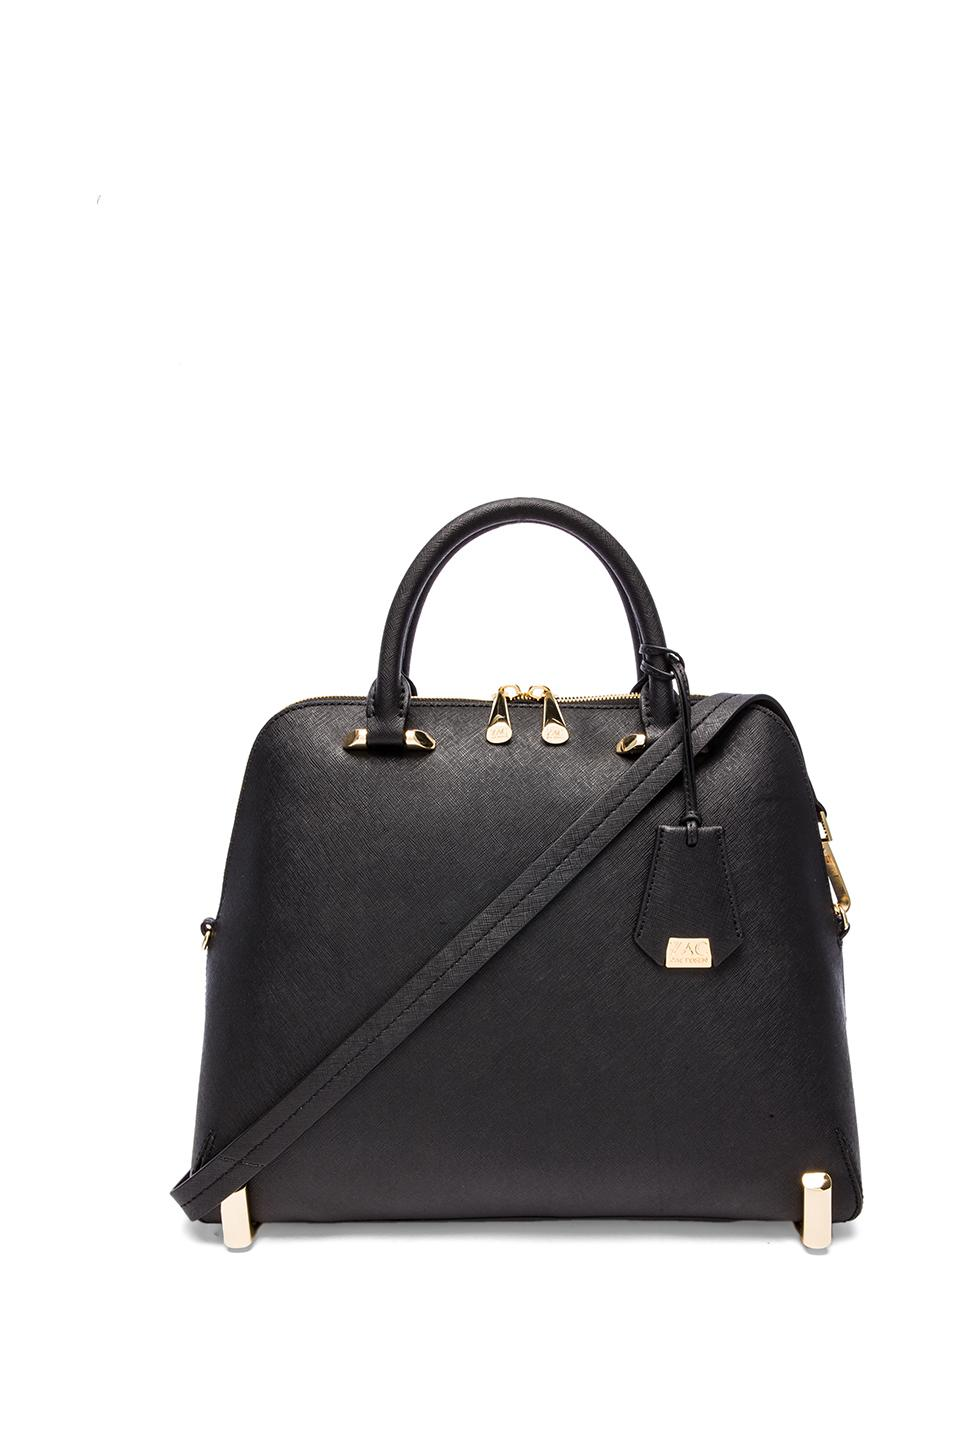 Zac Zac Posen Daphne Dome Bag in Black